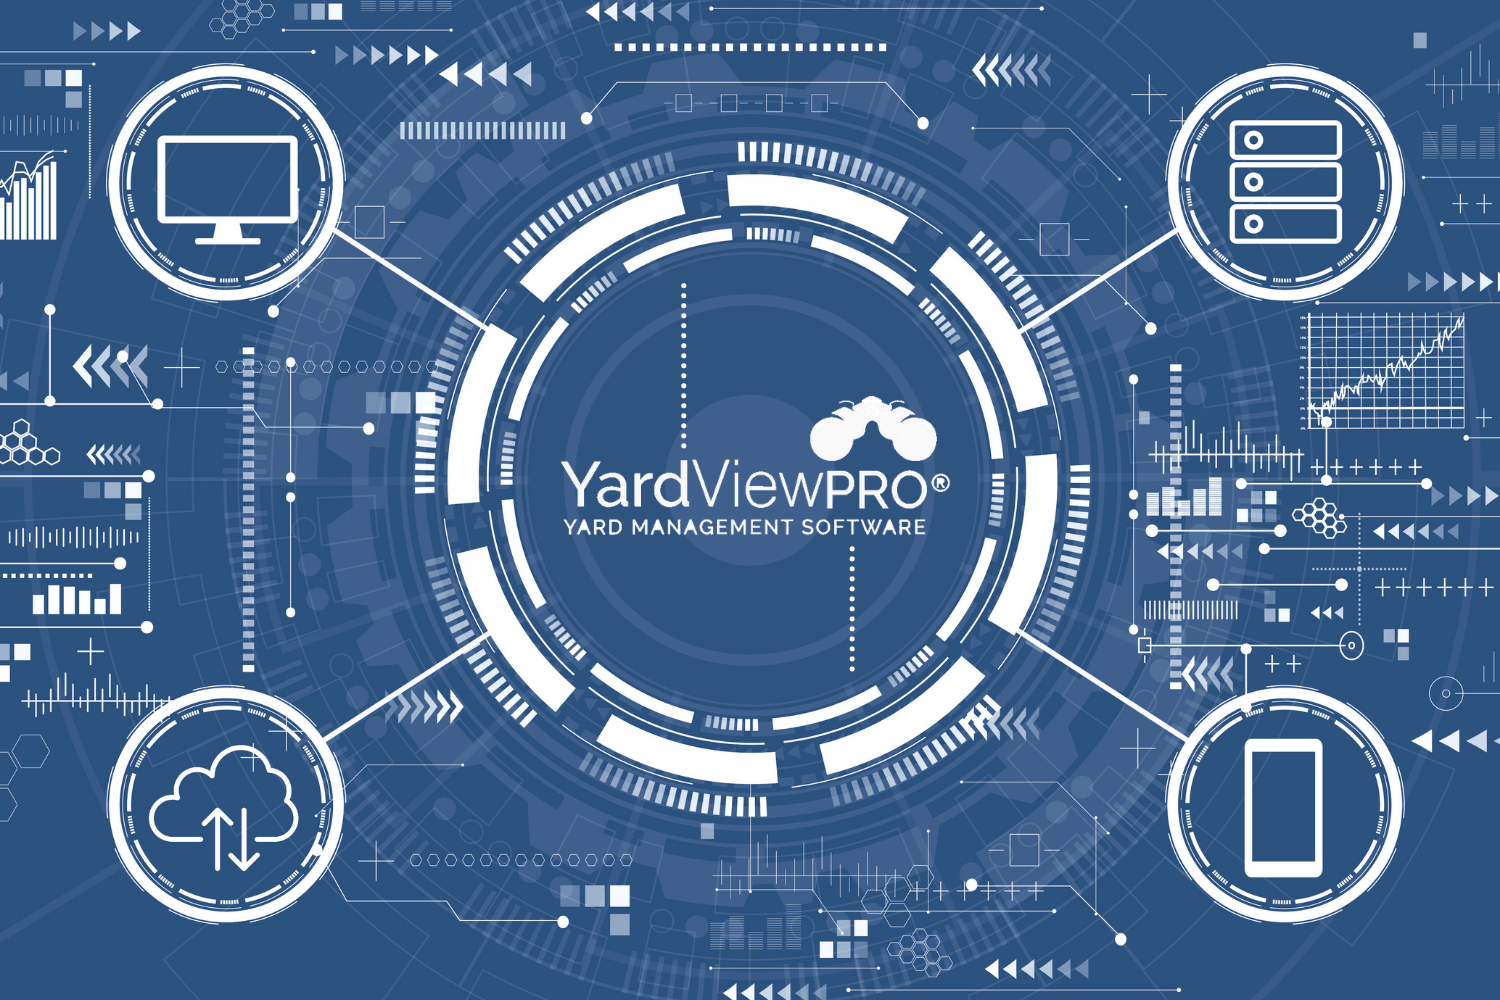 A digital illustration of interworking, interconnected, integrated systems working with YardView yard management software